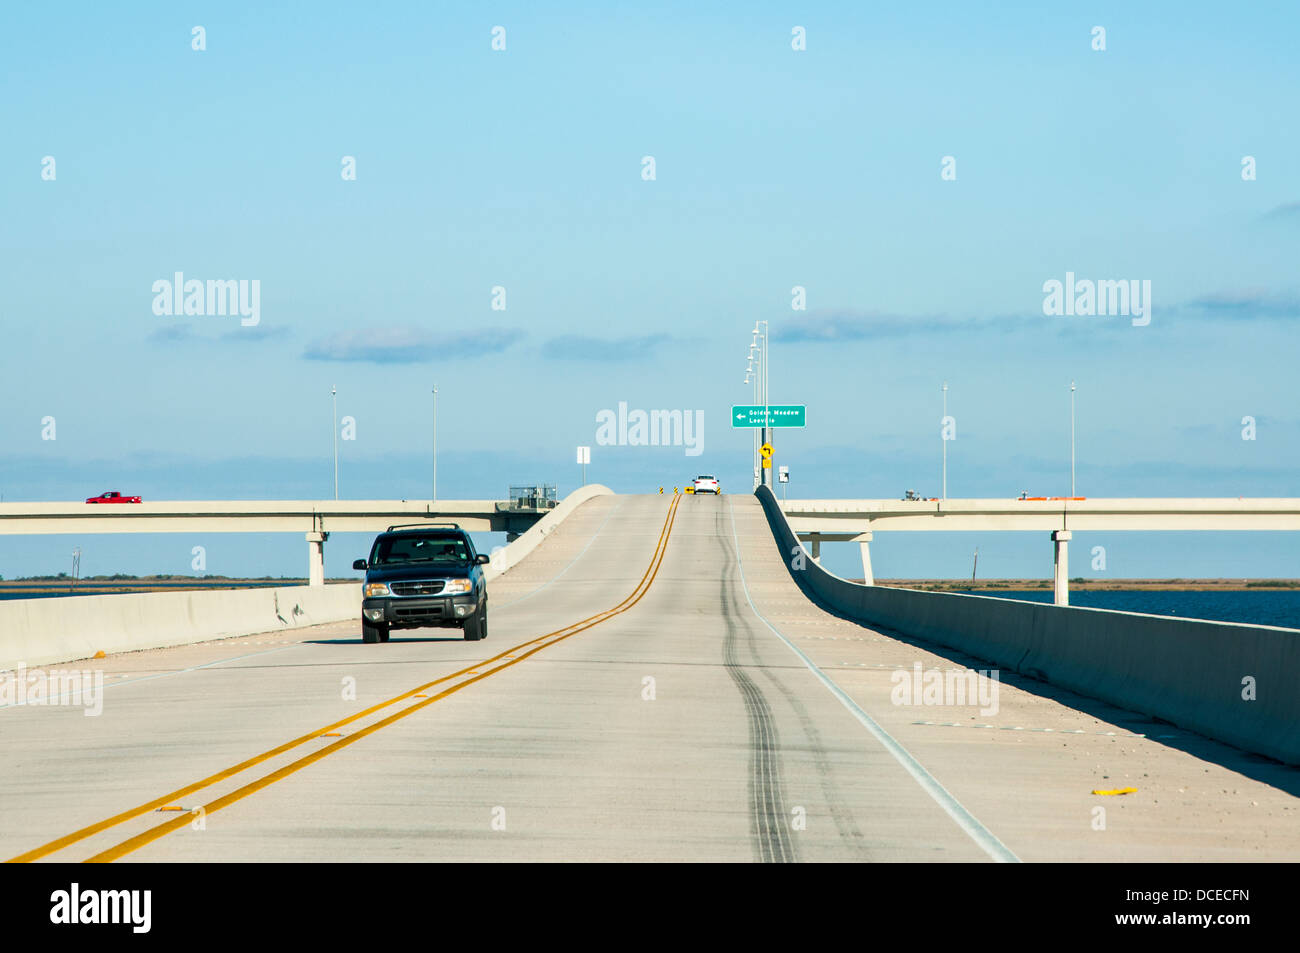 Grand Isle Louisiana Stock Photos & Grand Isle Louisiana